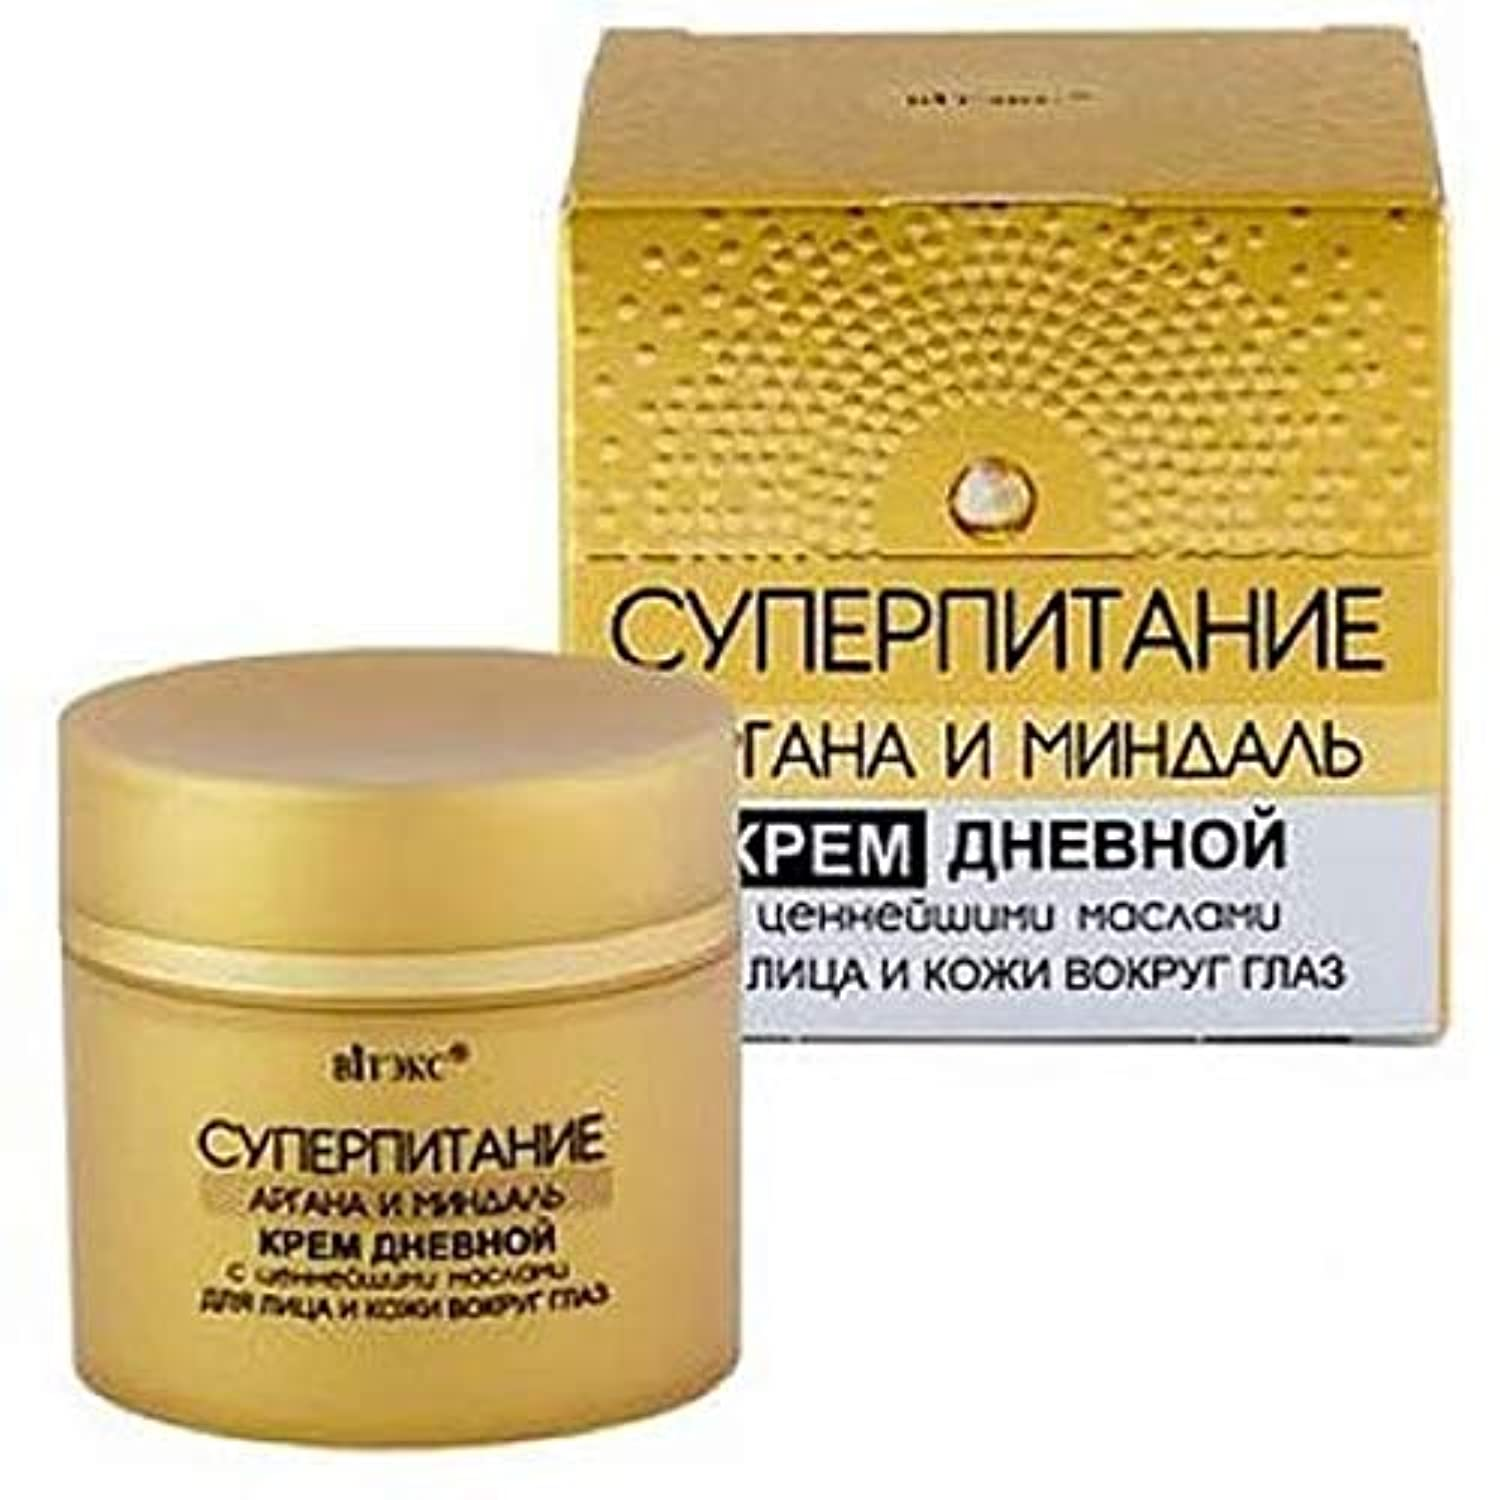 Day cream with the most valuable oils for the face and skin around the eyes | Argan and Almond | Nutrition | Actively...